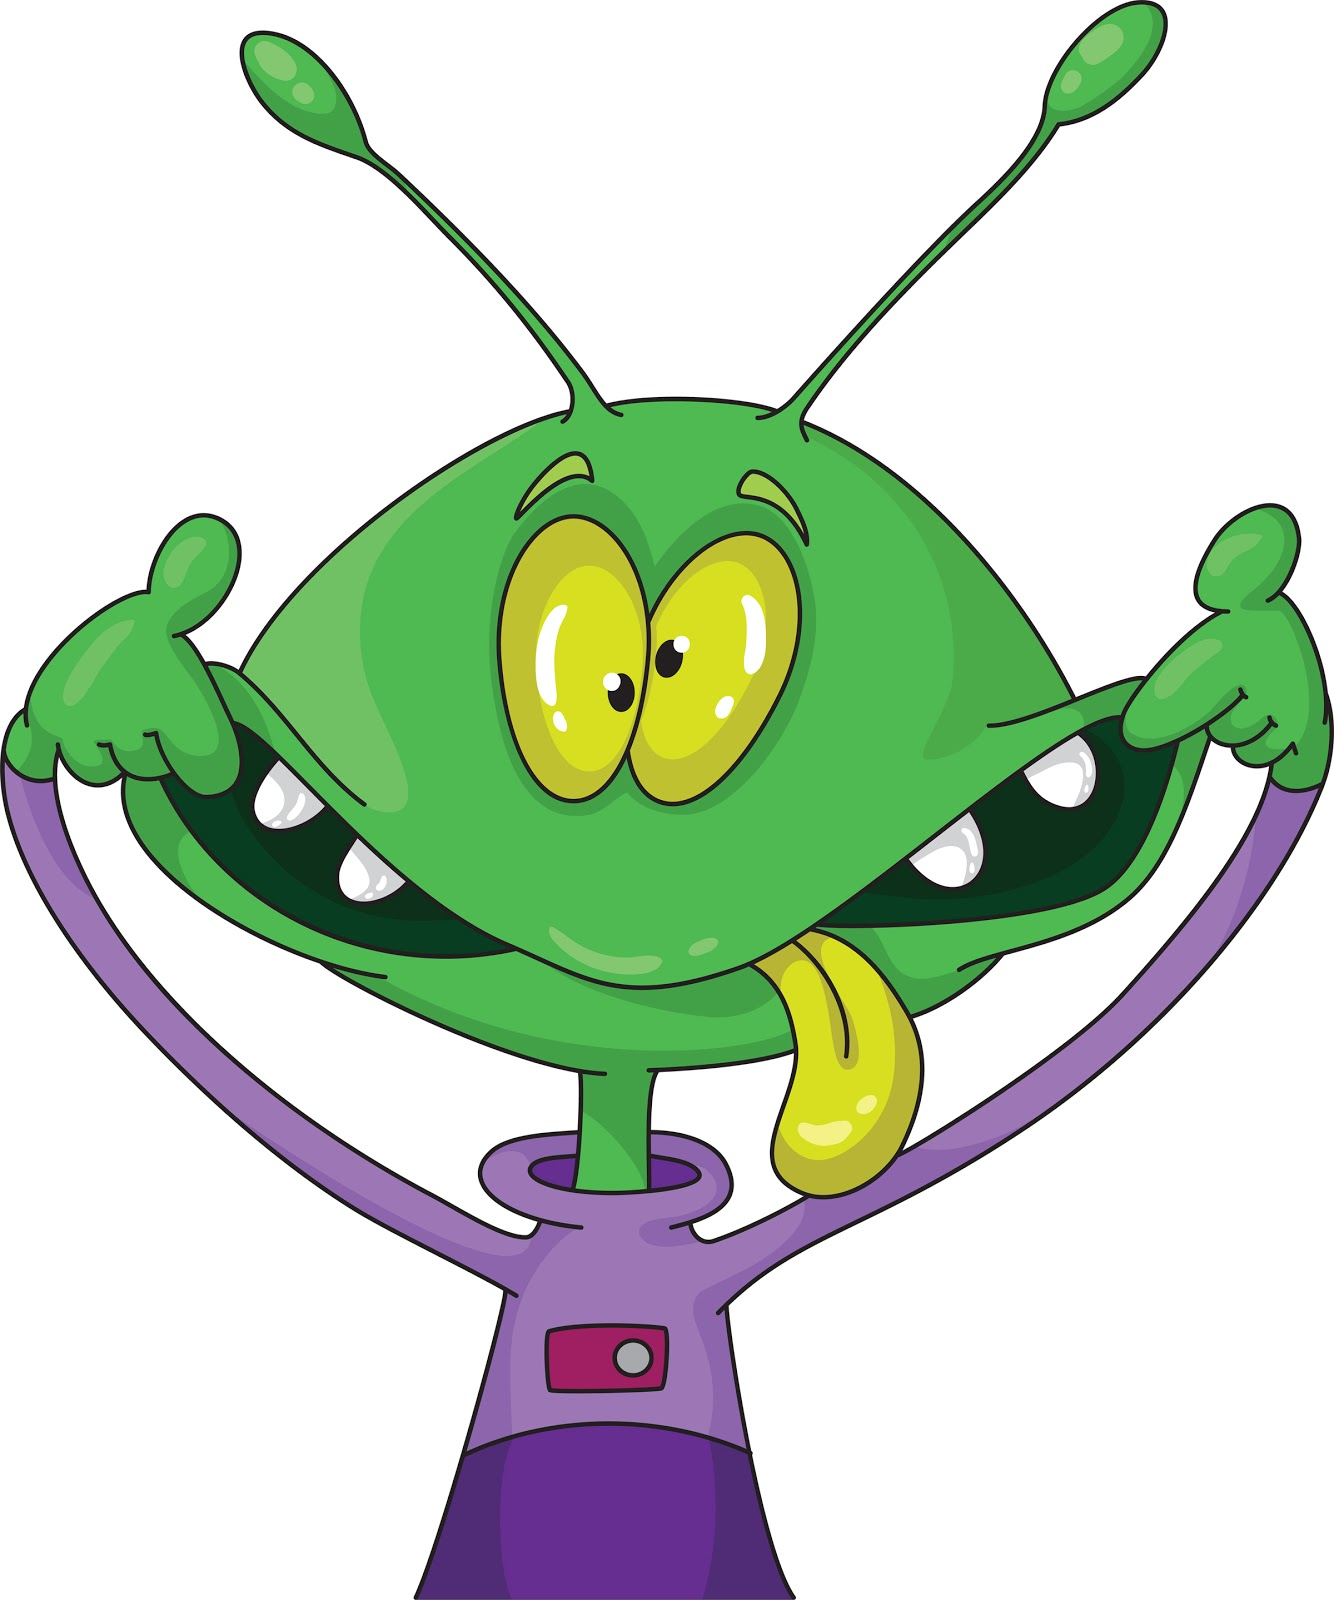 1334x1600 Alien Clip Art Free Collection Download And Share Alien Clip Art